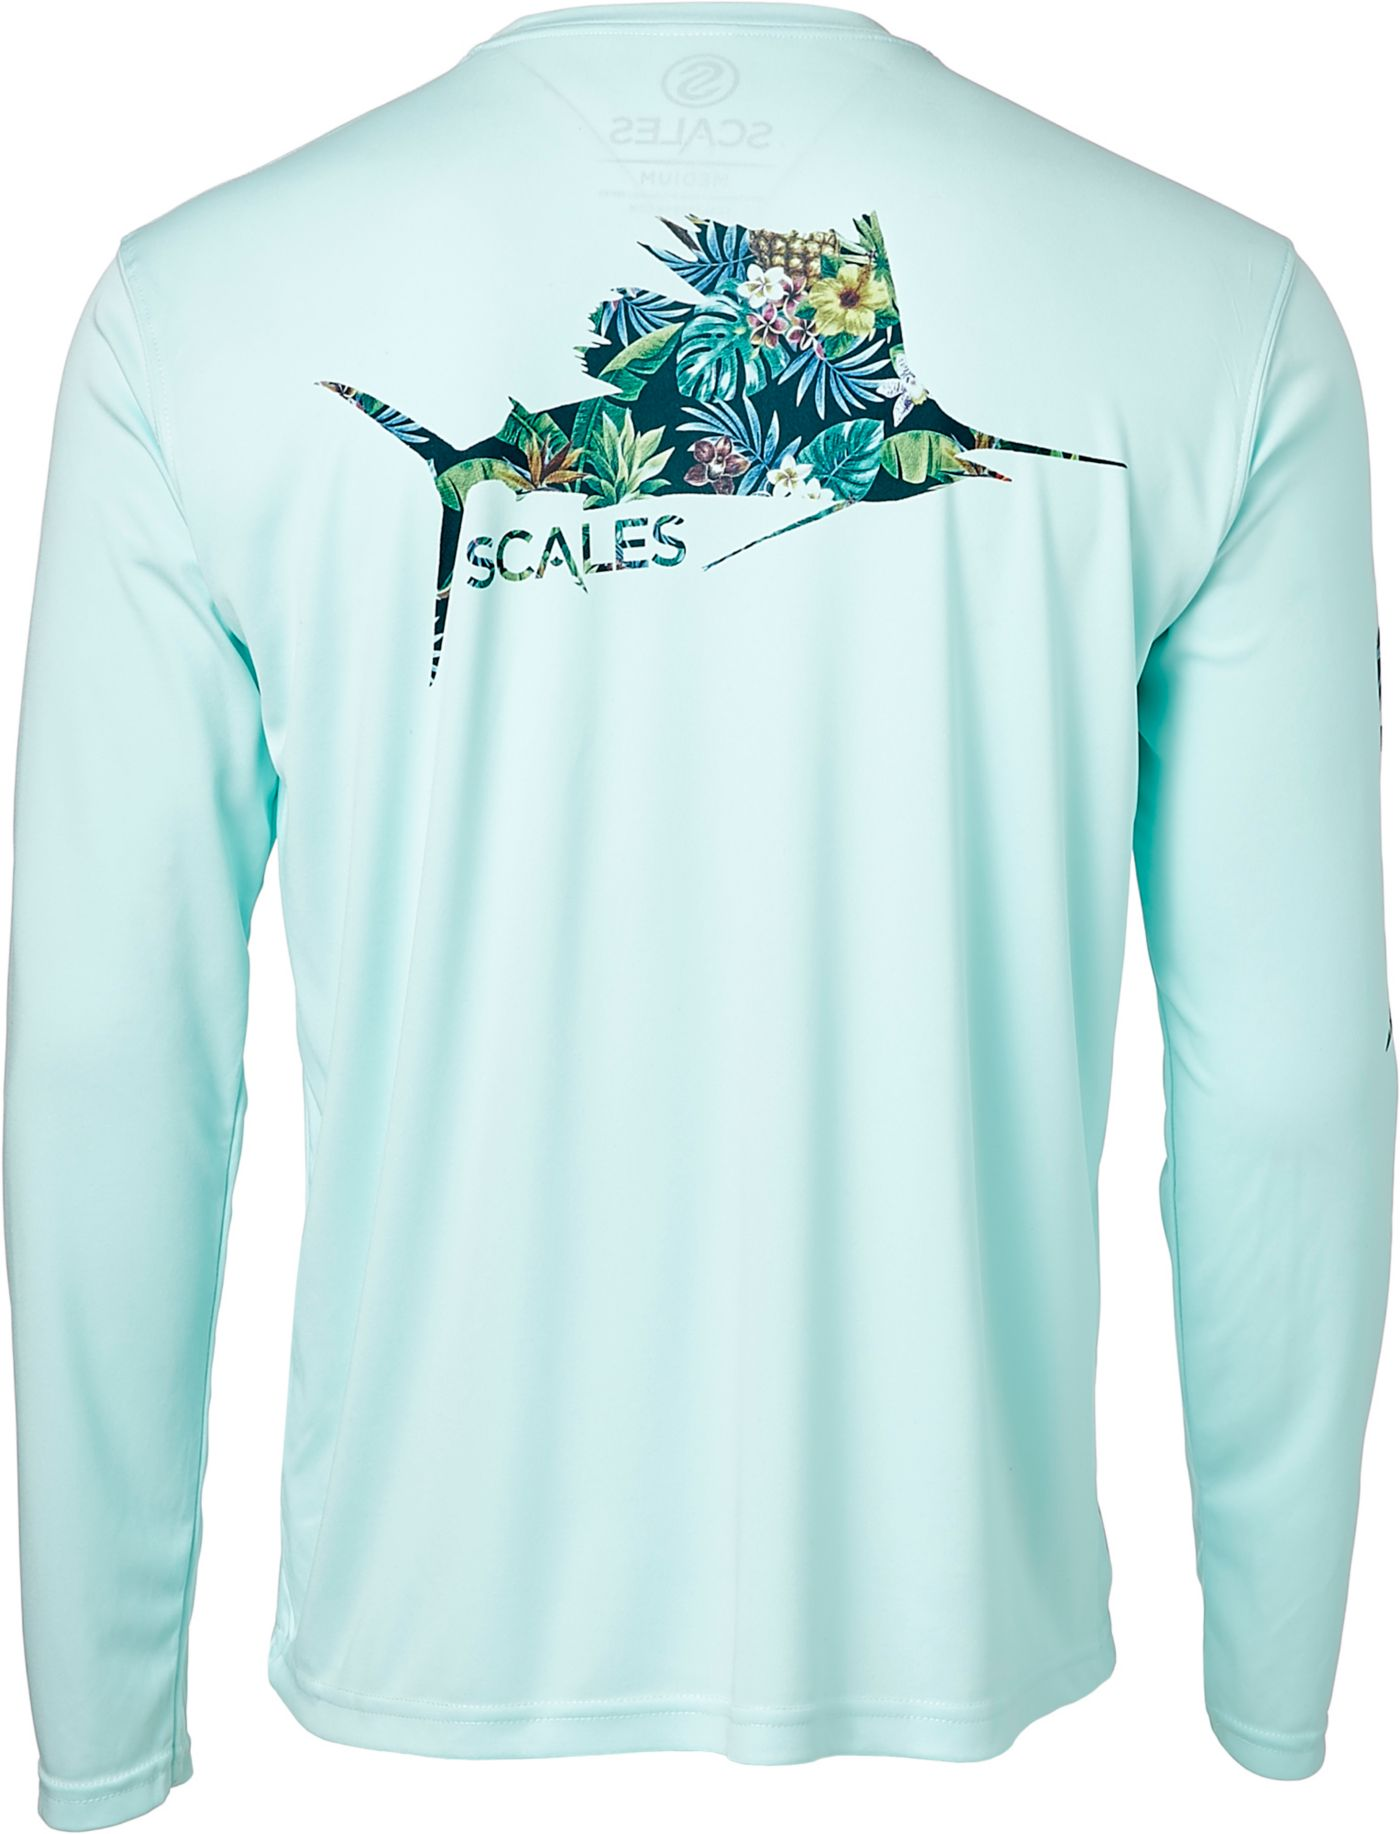 Scales Gear Men's Tropical Sail Performance Long Sleeve Shirt